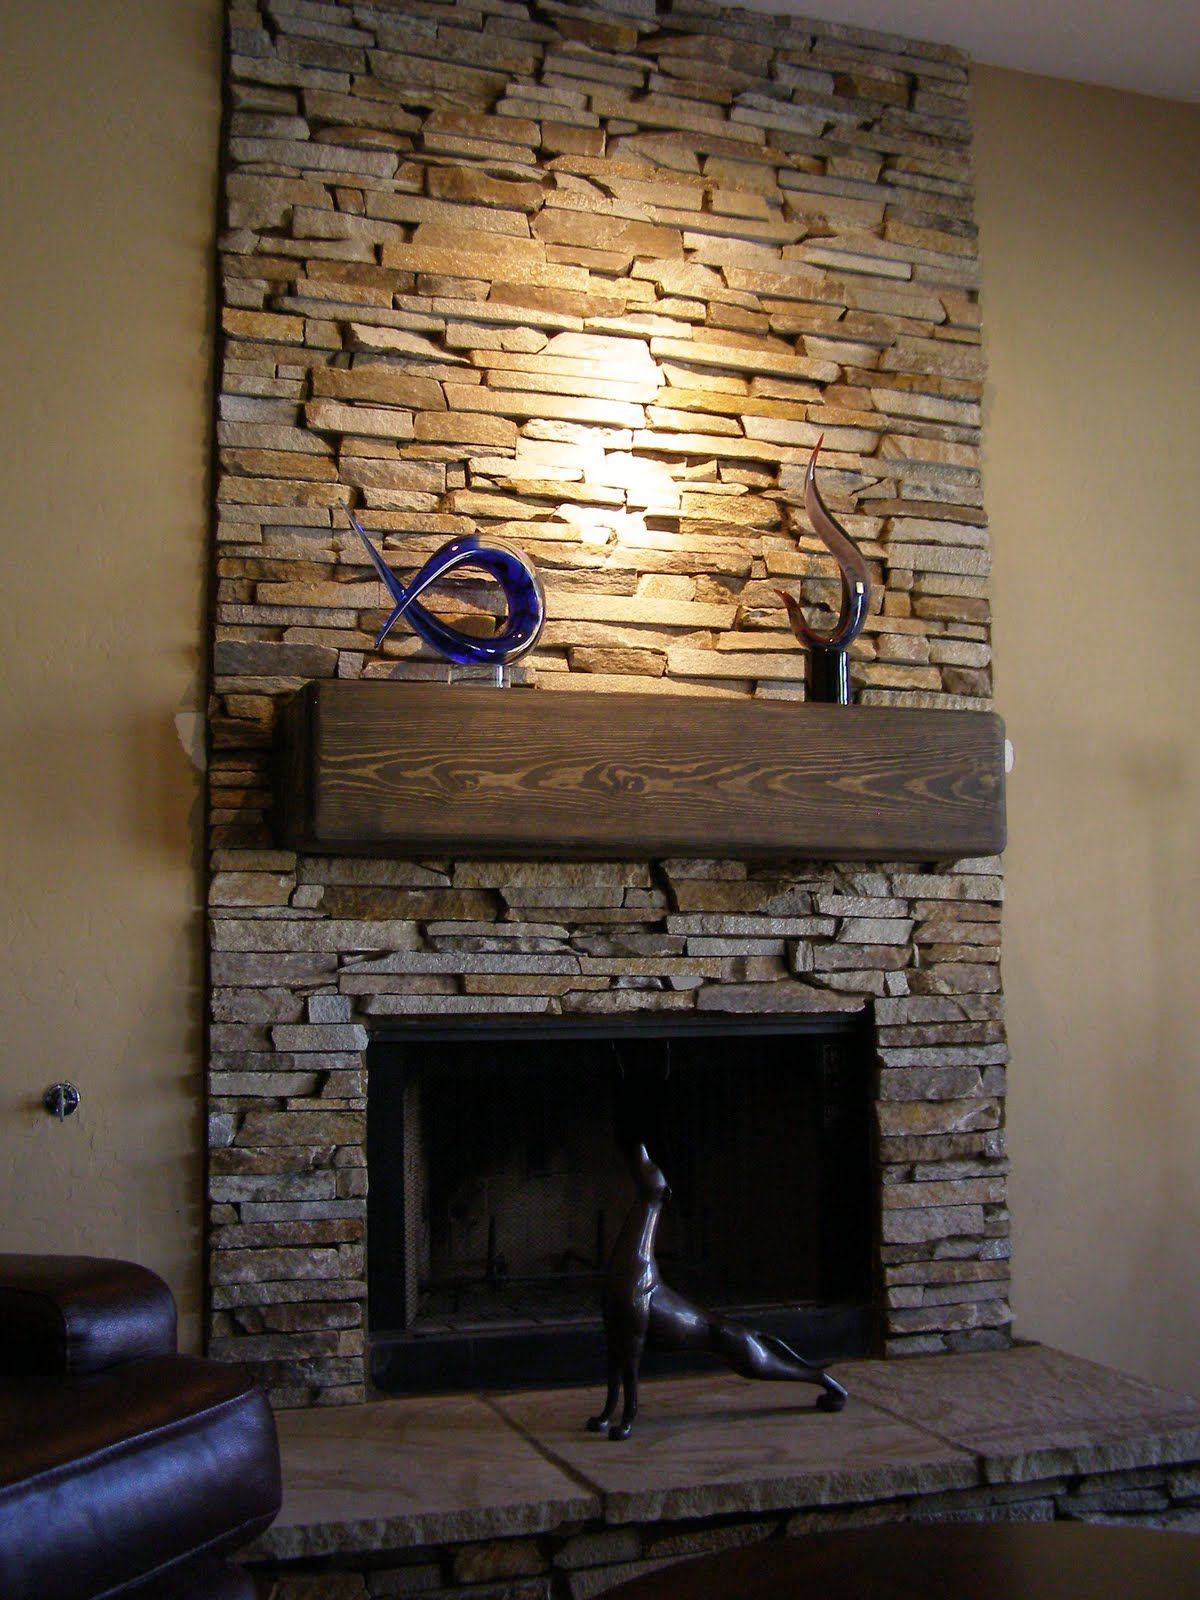 Fireplace a better stone company inc diy for my new house in 2019 stone fireplace - Images of stone fireplaces ...